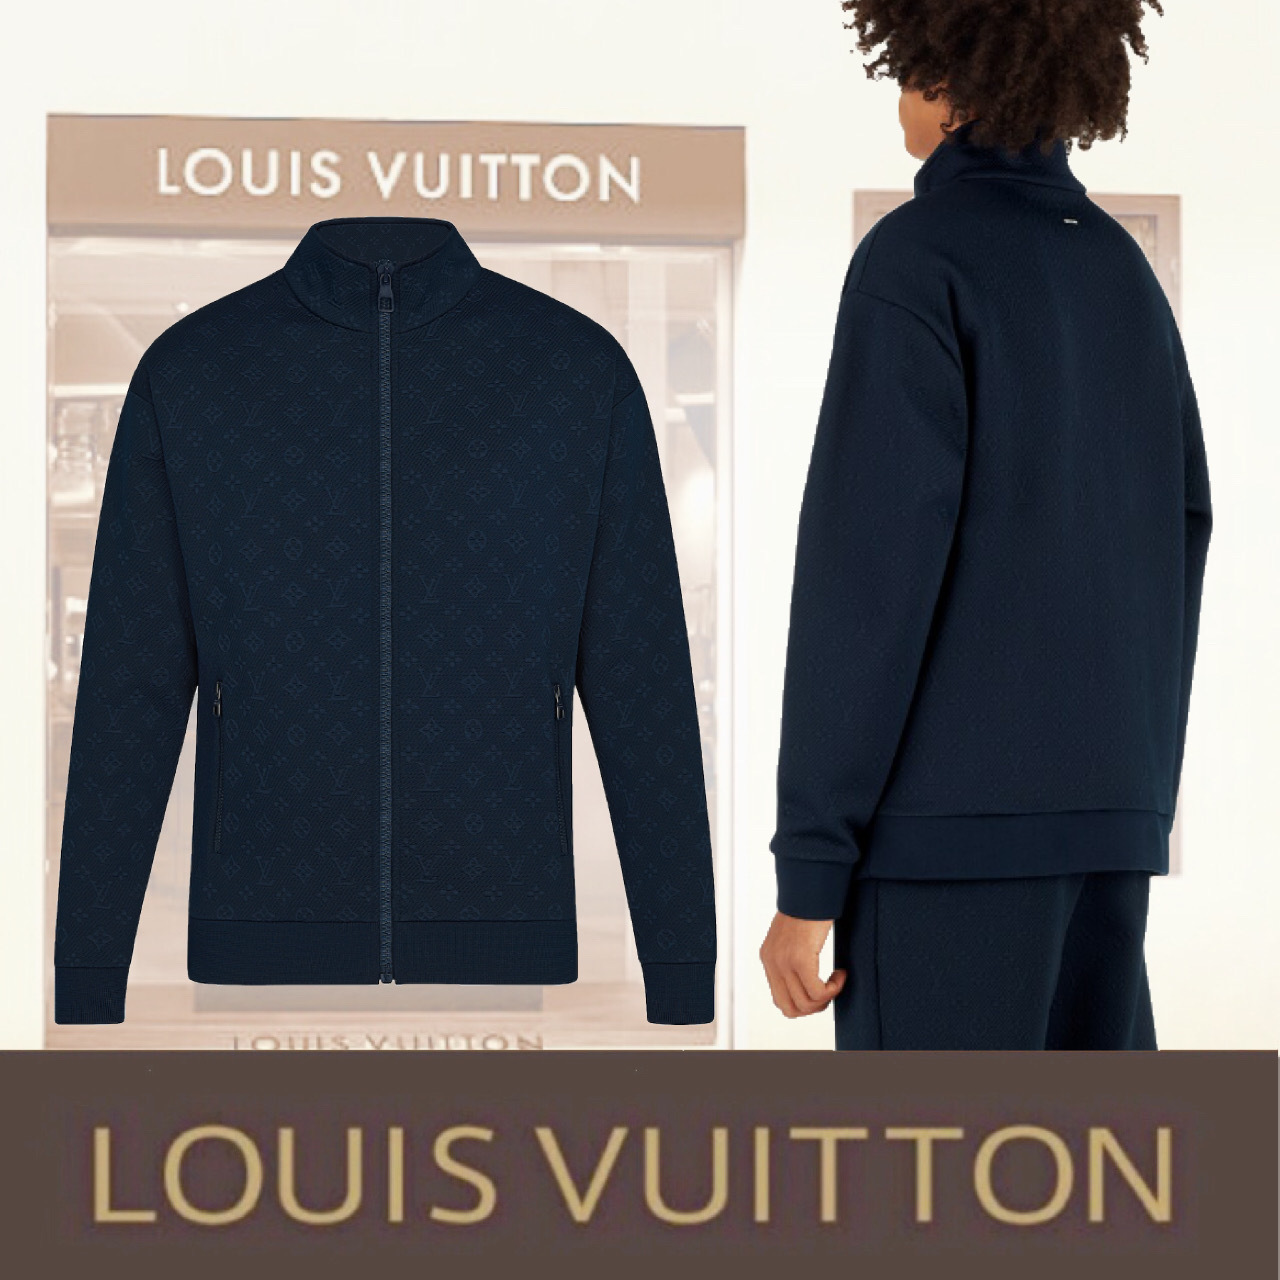 Louis Vuitton モノグラム パーカー ジャージ 1A5CUX ネイビー (Louis Vuitton/ジャージ) 1A5CUX